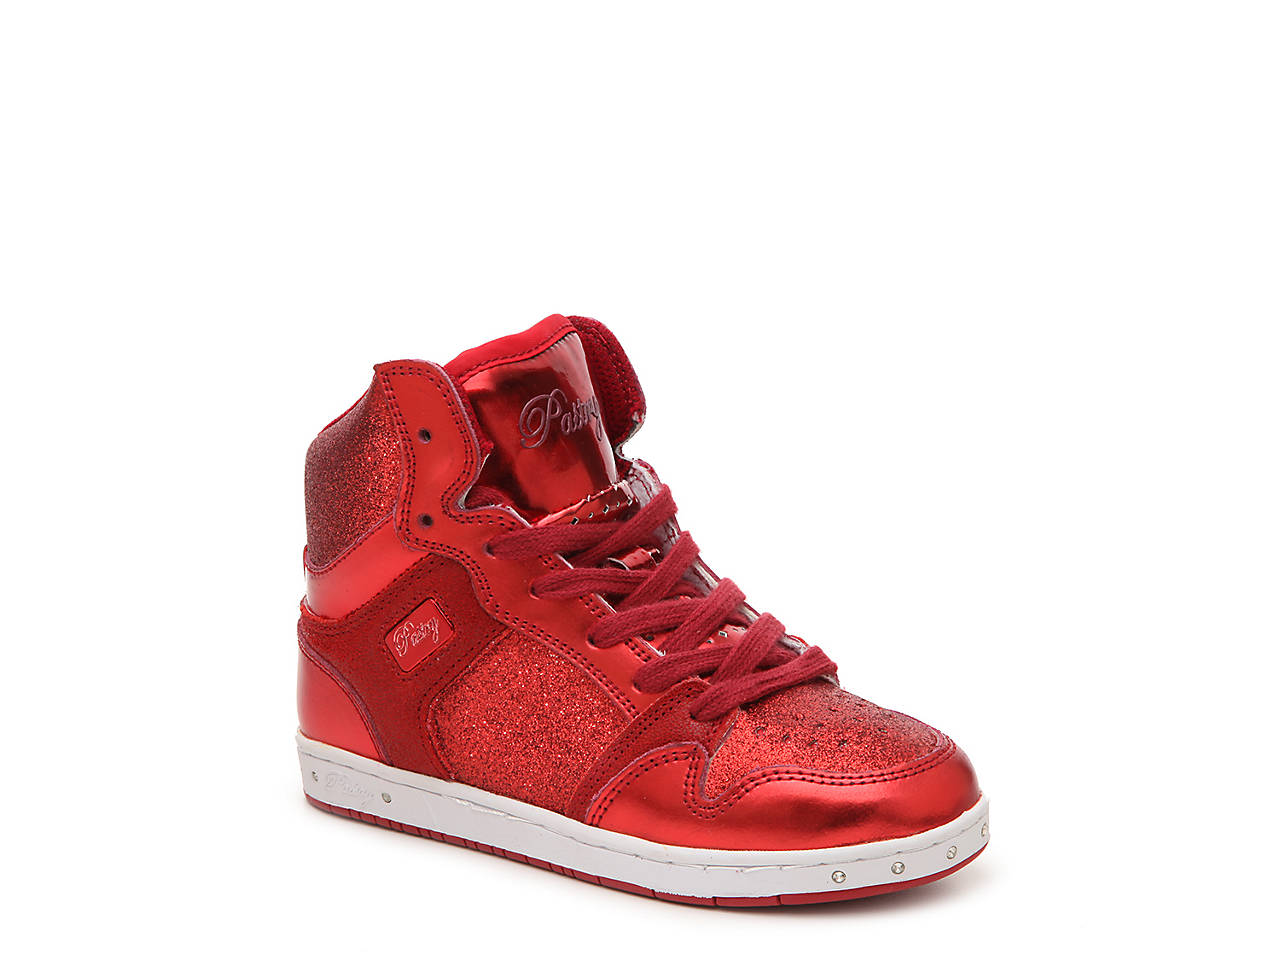 6bfeca38a39 Pastry Glam Pie Glitter Toddler   Youth High-Top Sneaker Kids Shoes ...